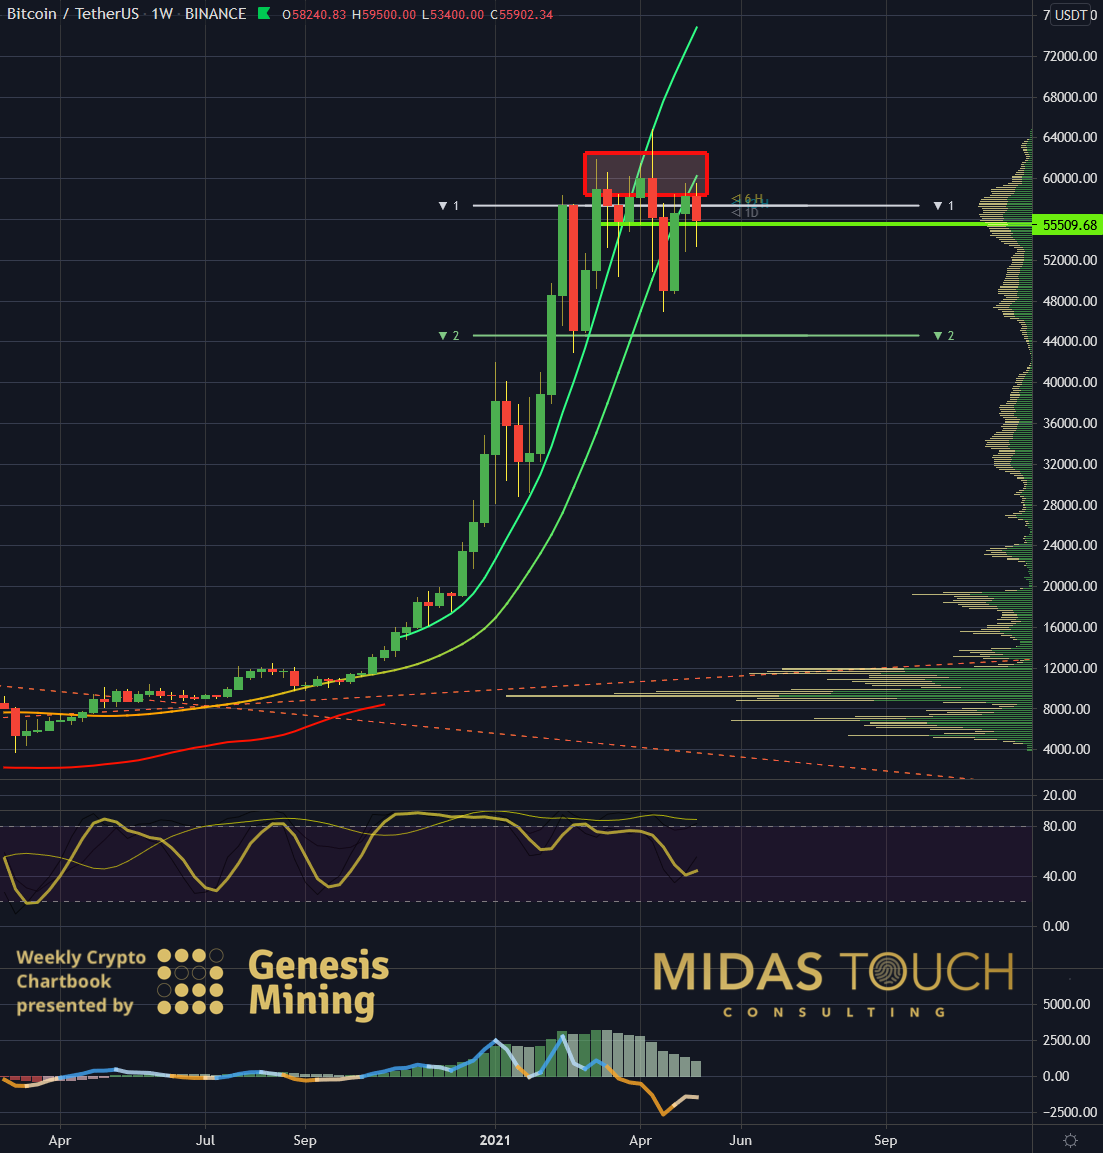 Bitcoin in US Dollar, weekly chart as of May 10th, 2021.